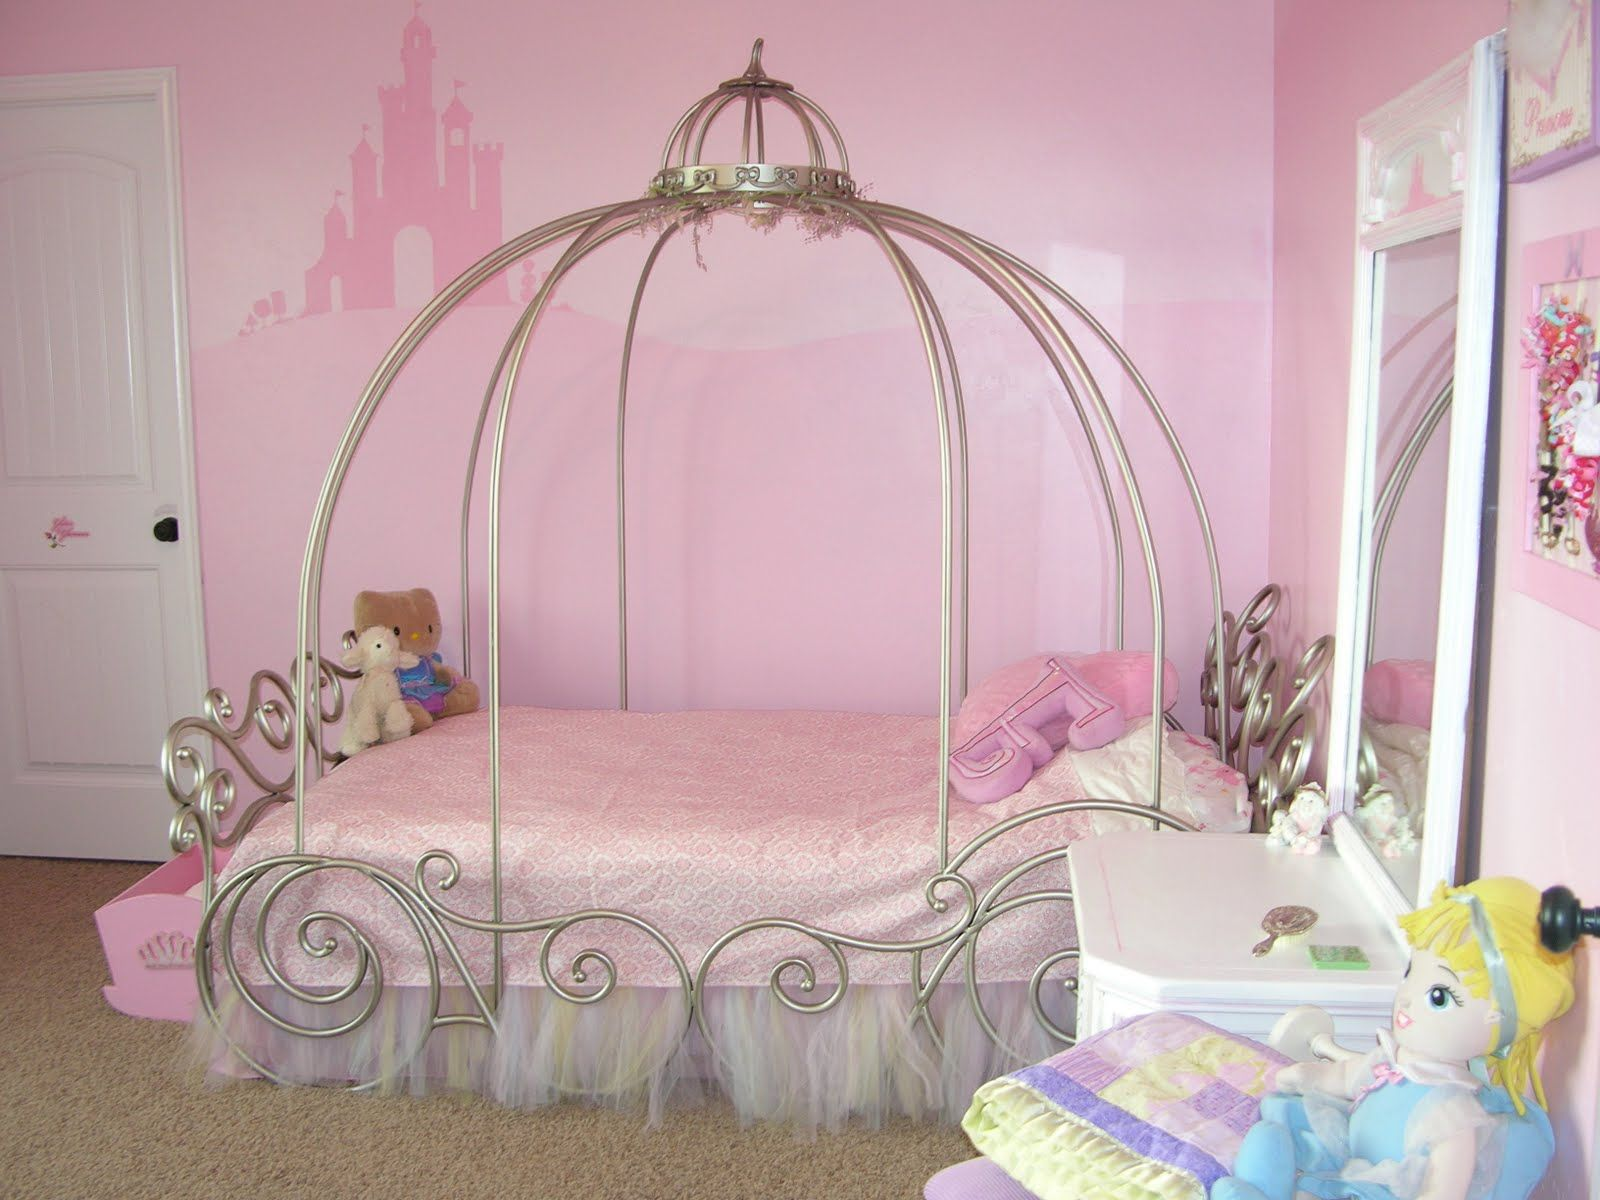 28 best true princess rooms images on pinterest | princess room